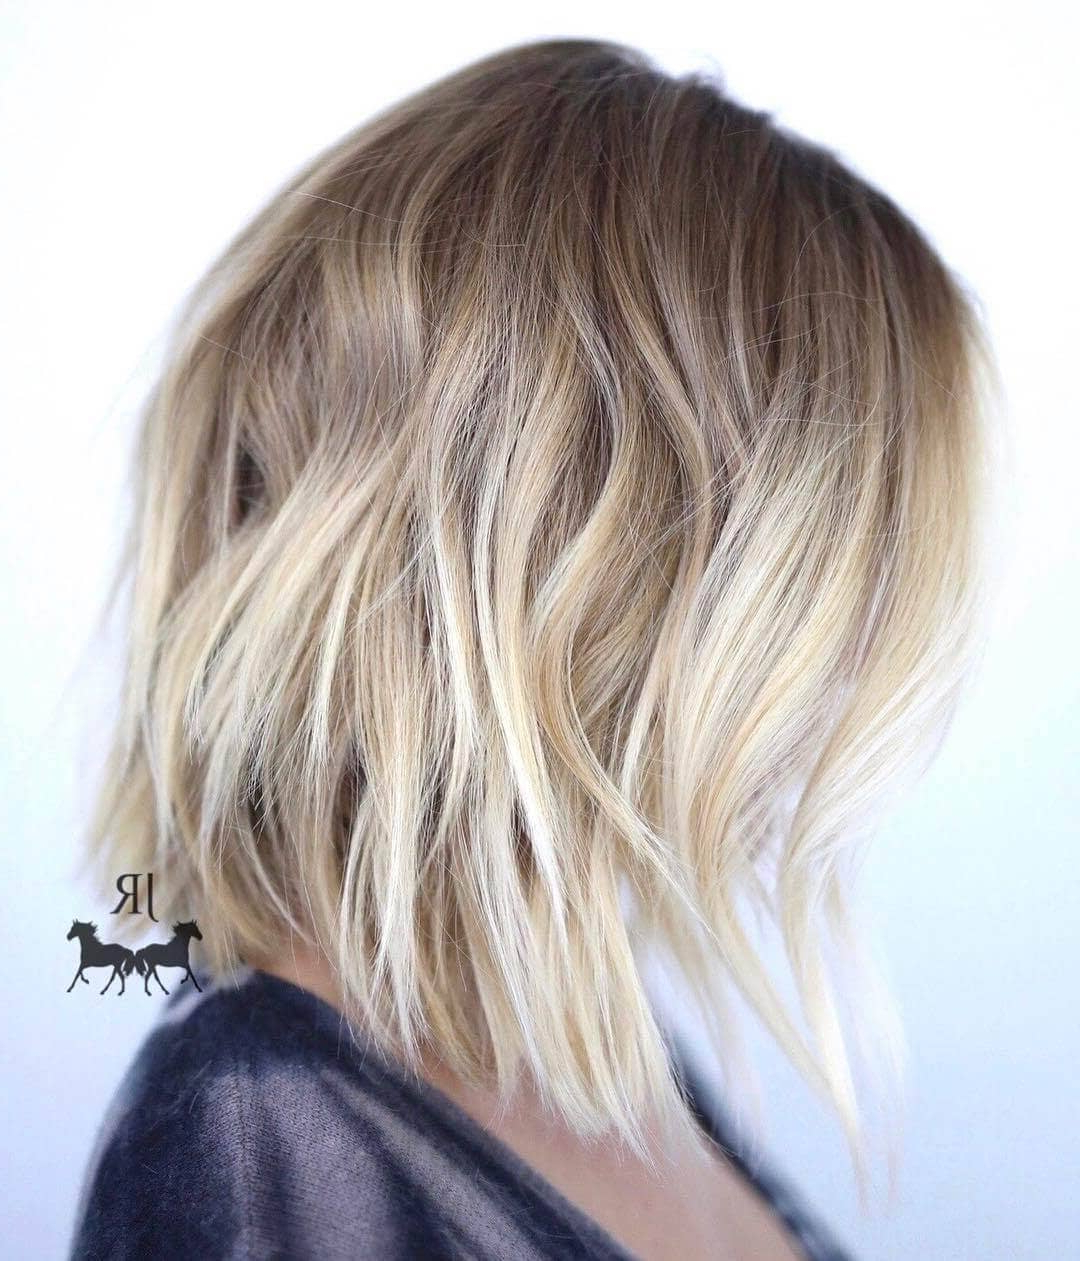 50 Fresh Short Blonde Hair Ideas To Update Your Style In 2018 Inside Messy Jaw Length Blonde Balayage Bob Haircuts (View 15 of 20)